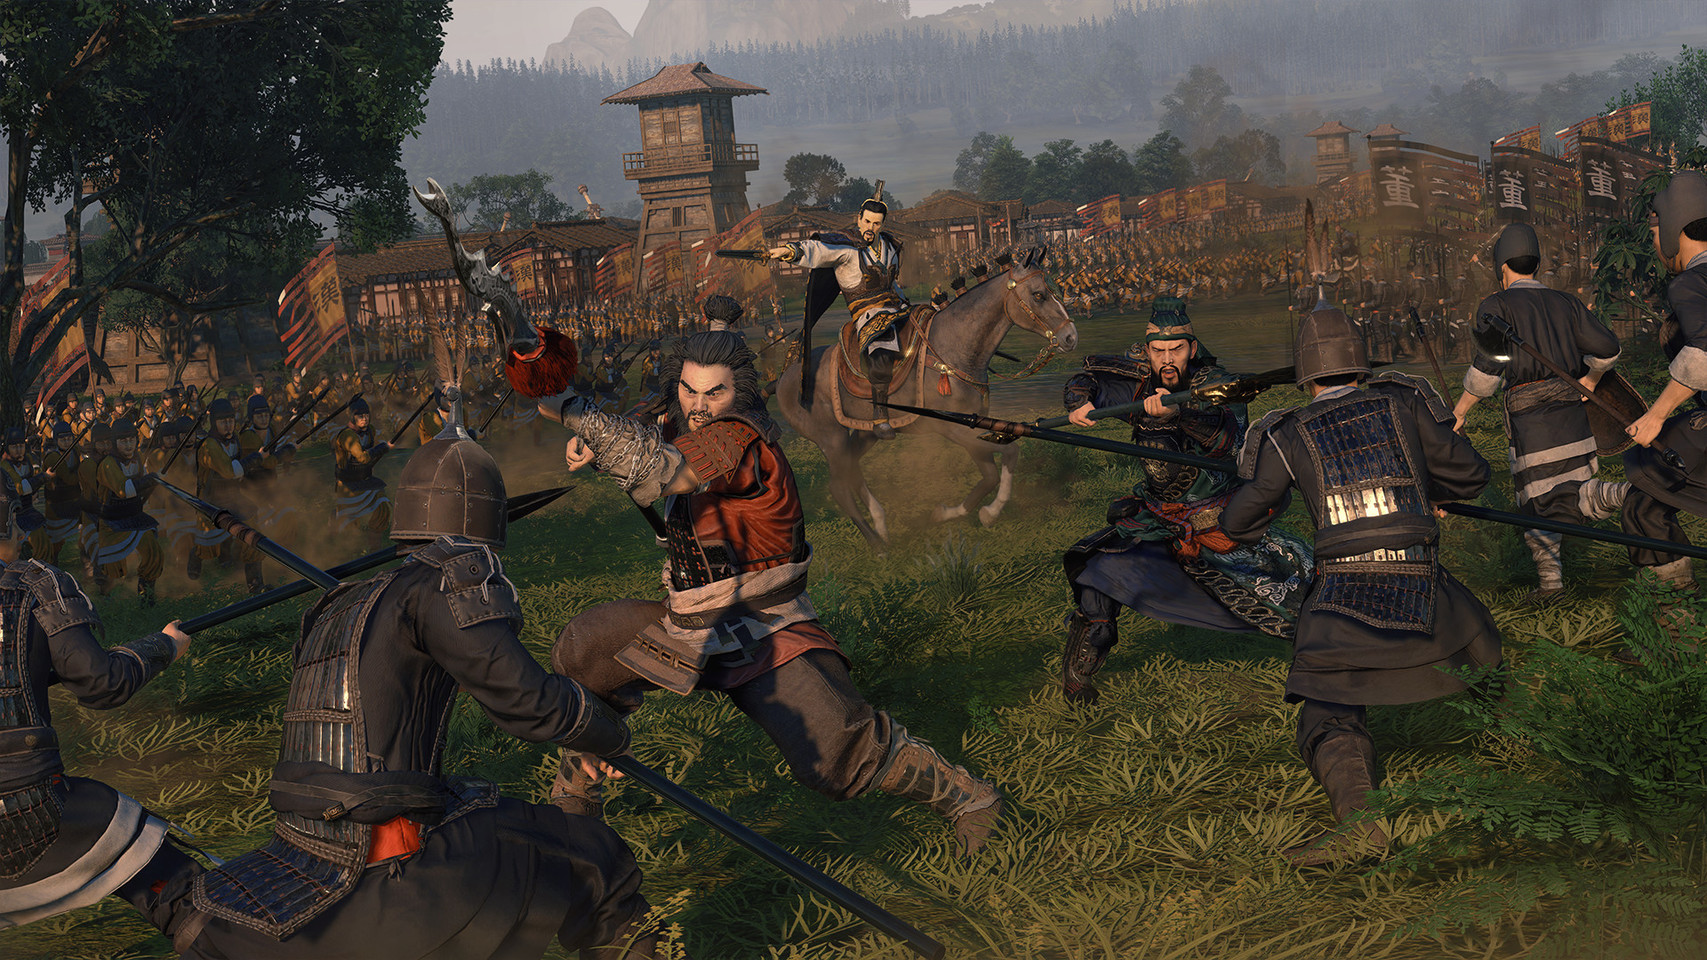 Three Kingdoms: Total War- System Specifications Revealed | TechPowerUp